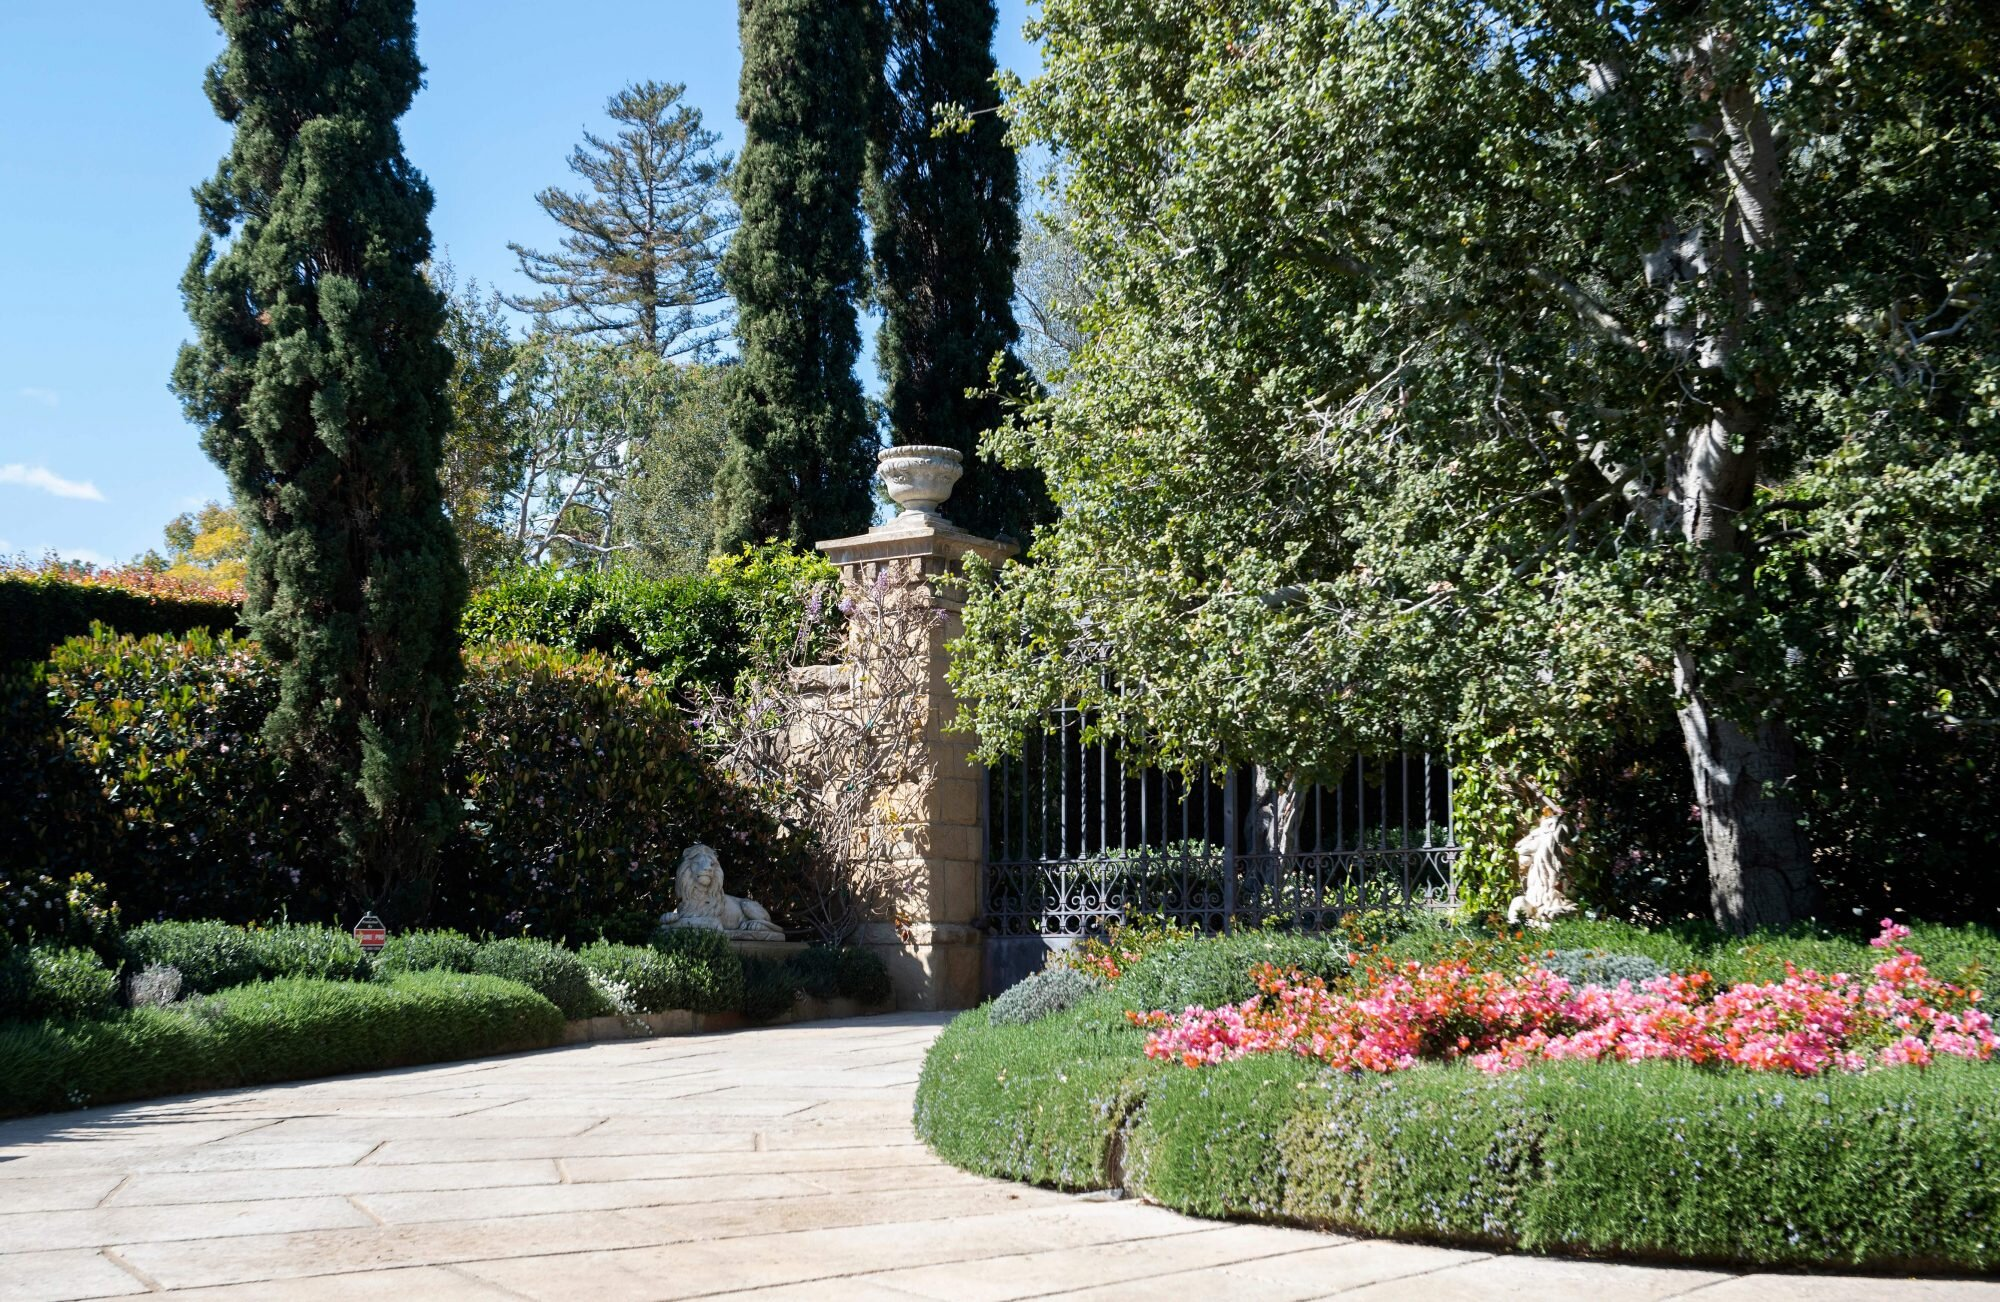 View of the gate of the Estate where Prince Harry and Meghan Markle have their house, in Montecito, California on March 6, 2021